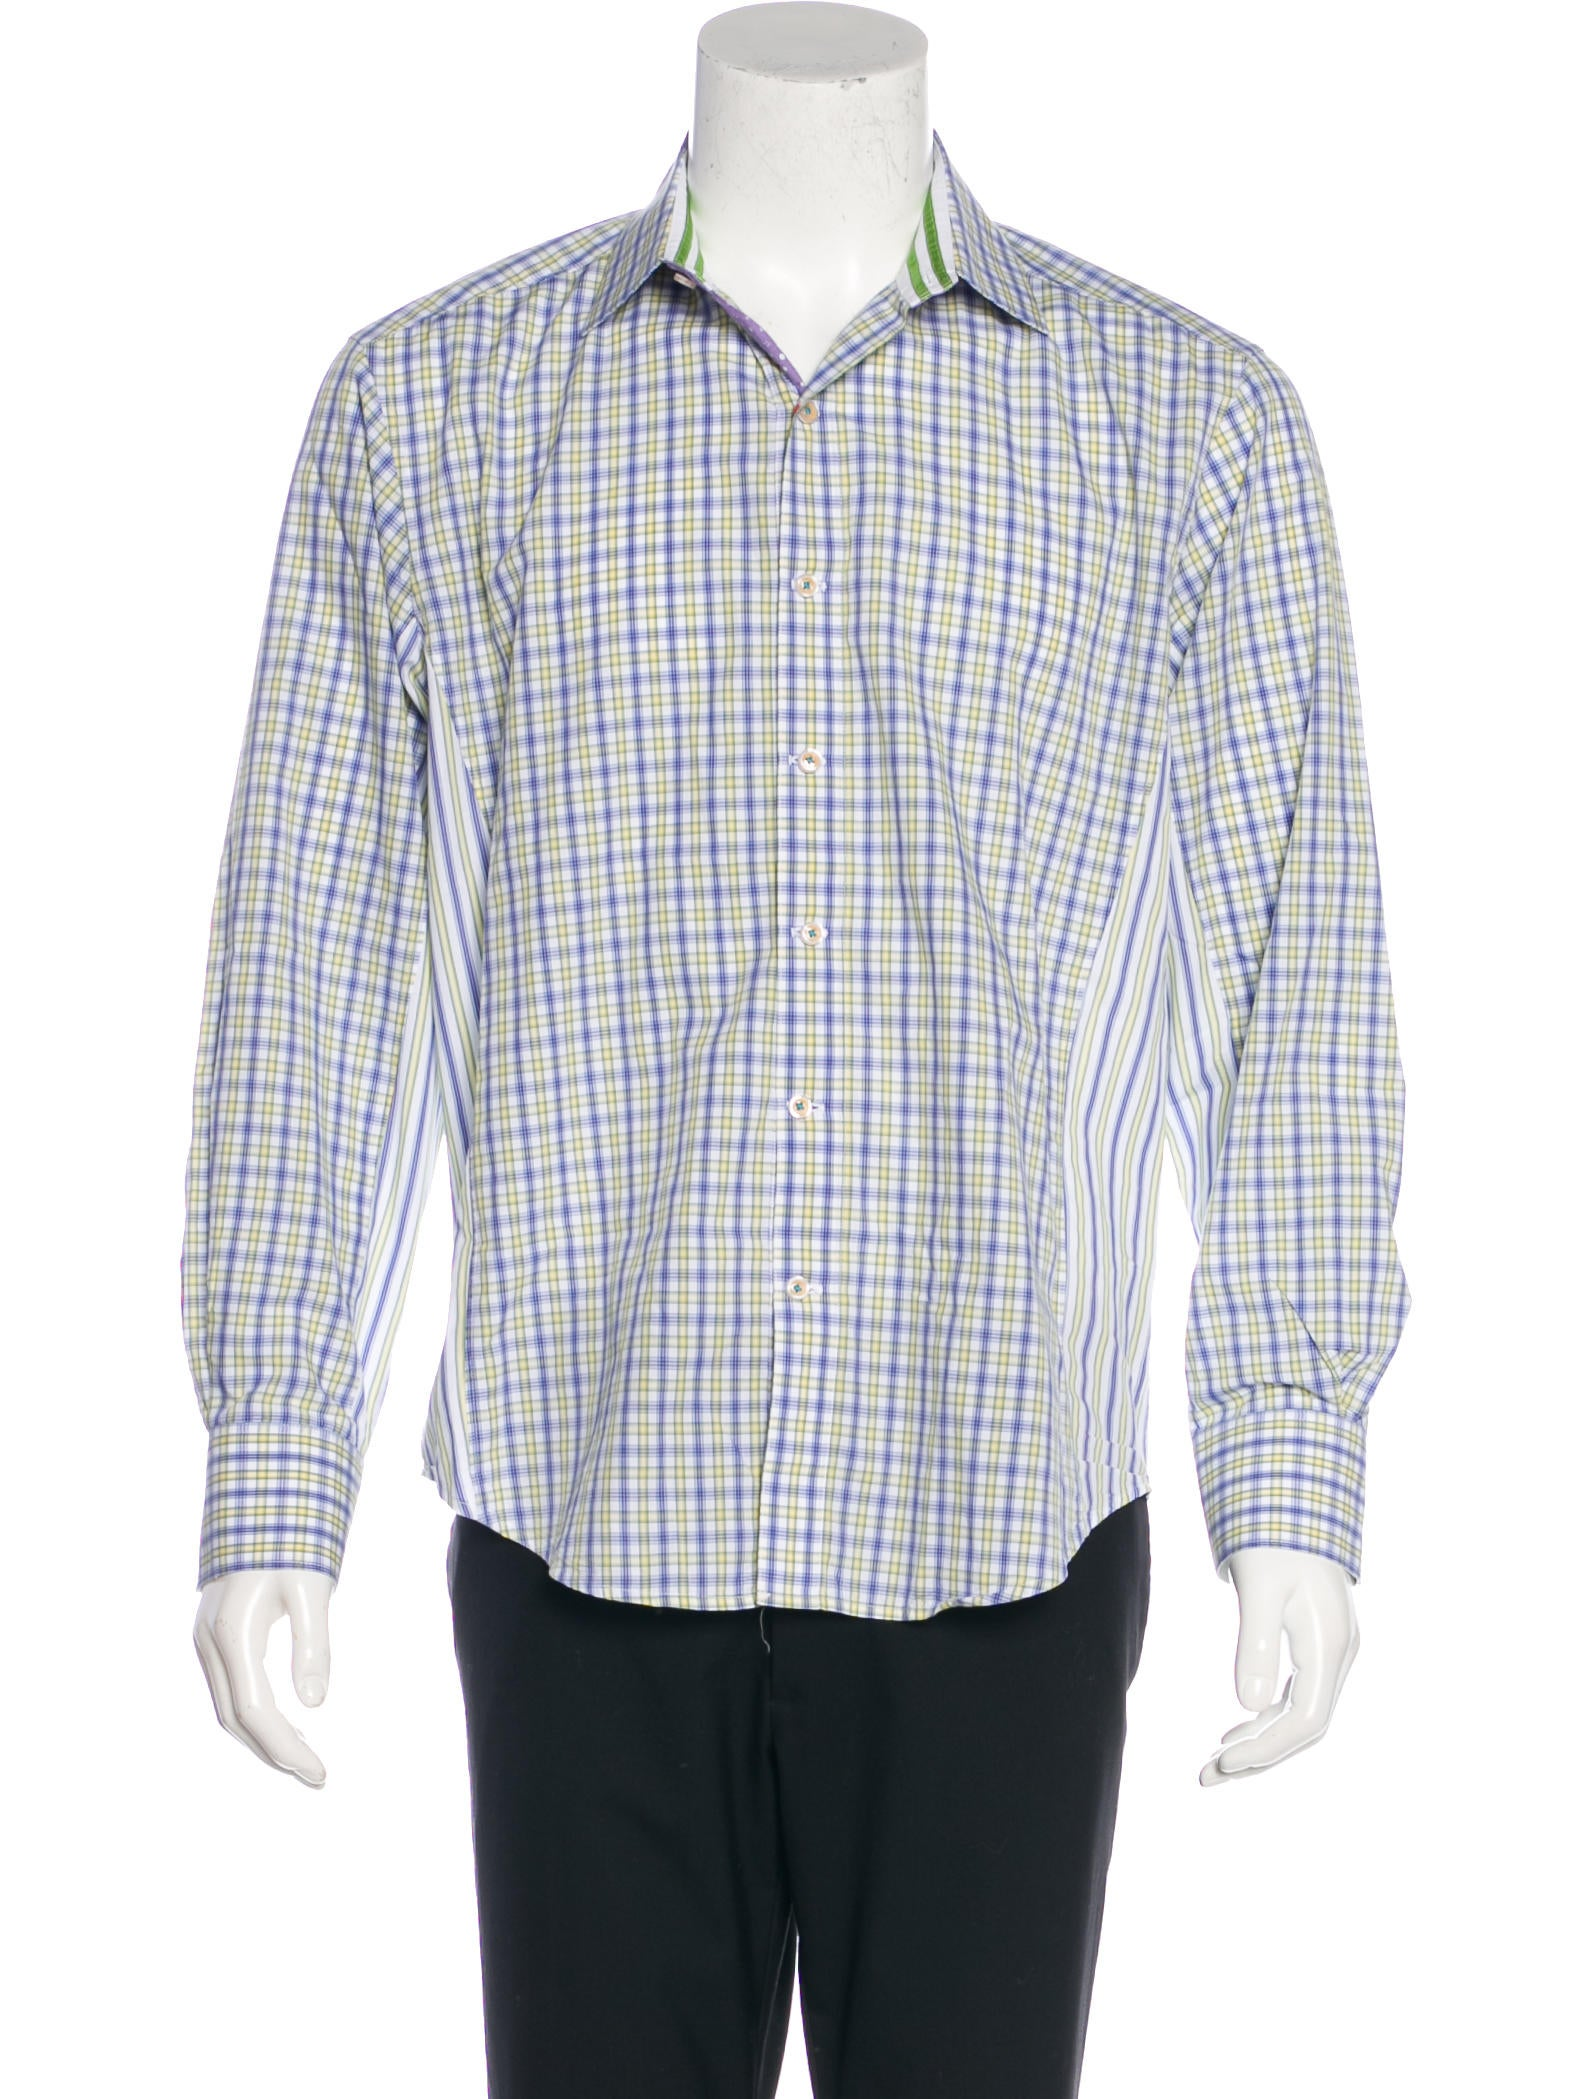 Robert graham tailored fit multi print shirt clothing for Tailored fit dress shirts